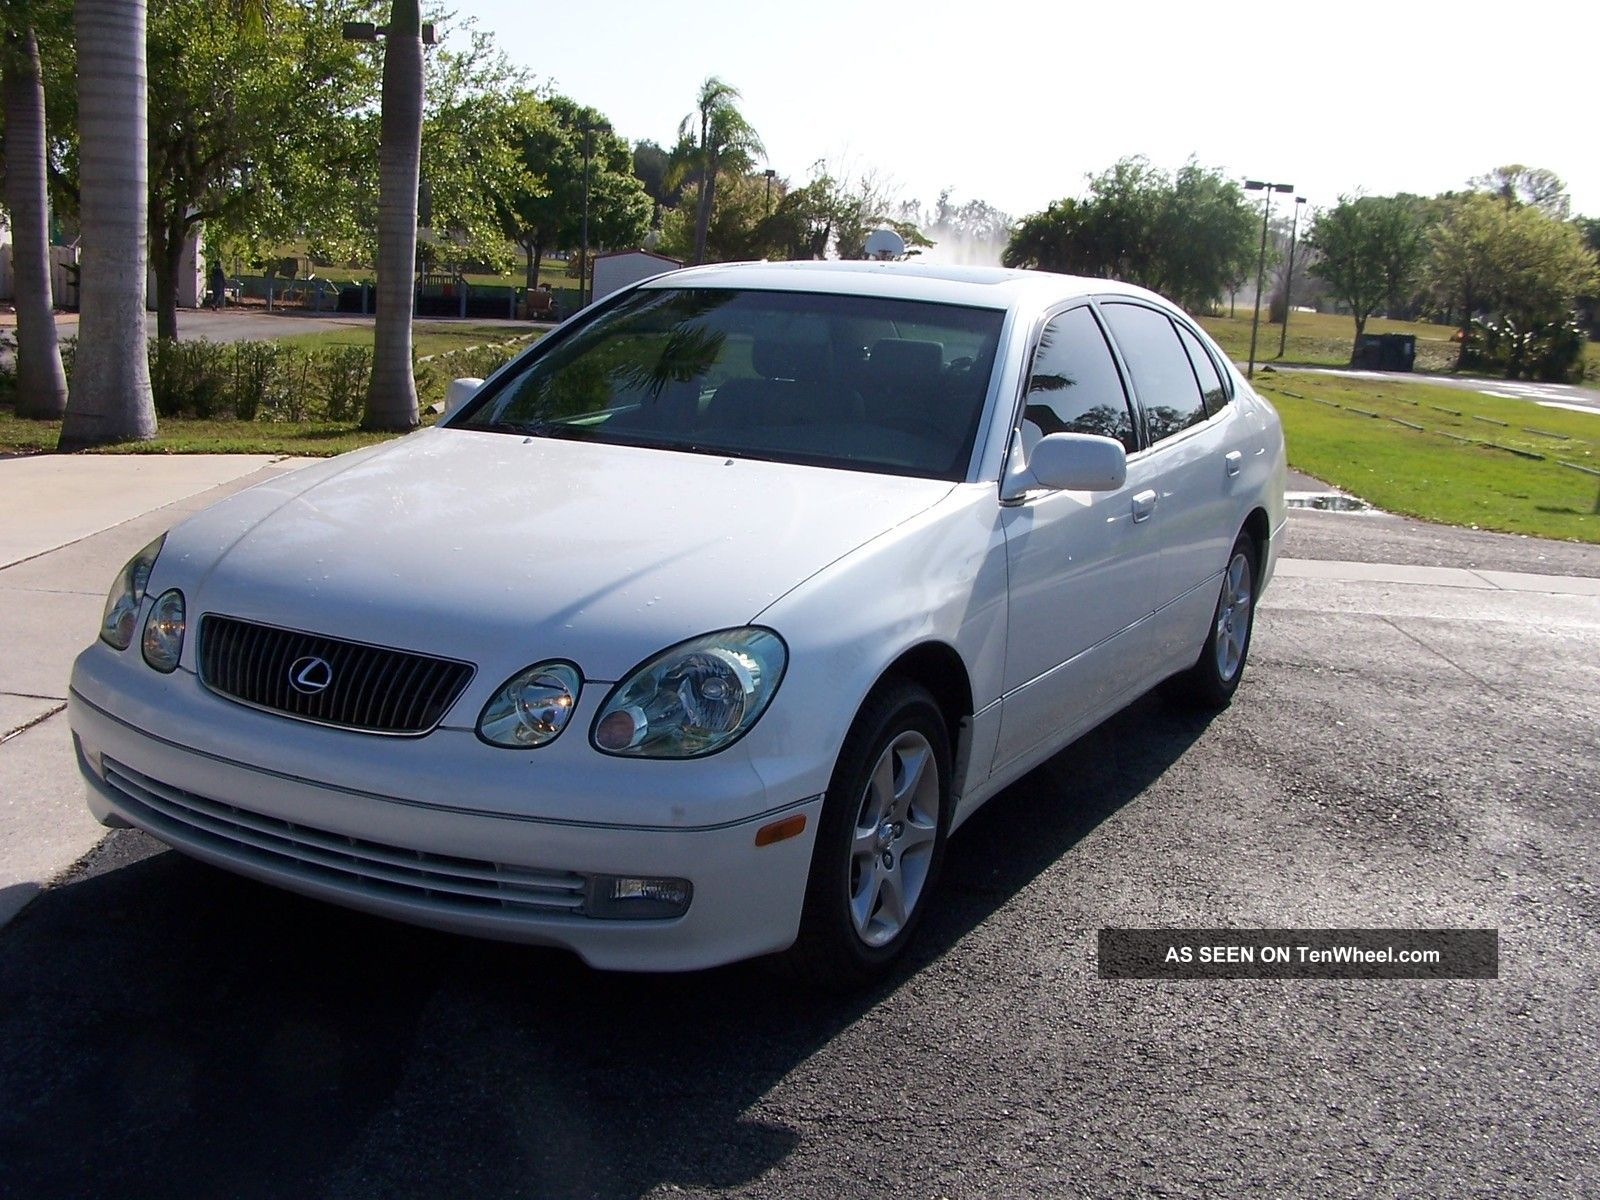 http://tenwheel.com/imgs/a/a/t/x/c/2004_lexus_gs300_florida_car_all_service_records_no_accidents_94k_mile_2_lgw.jpg